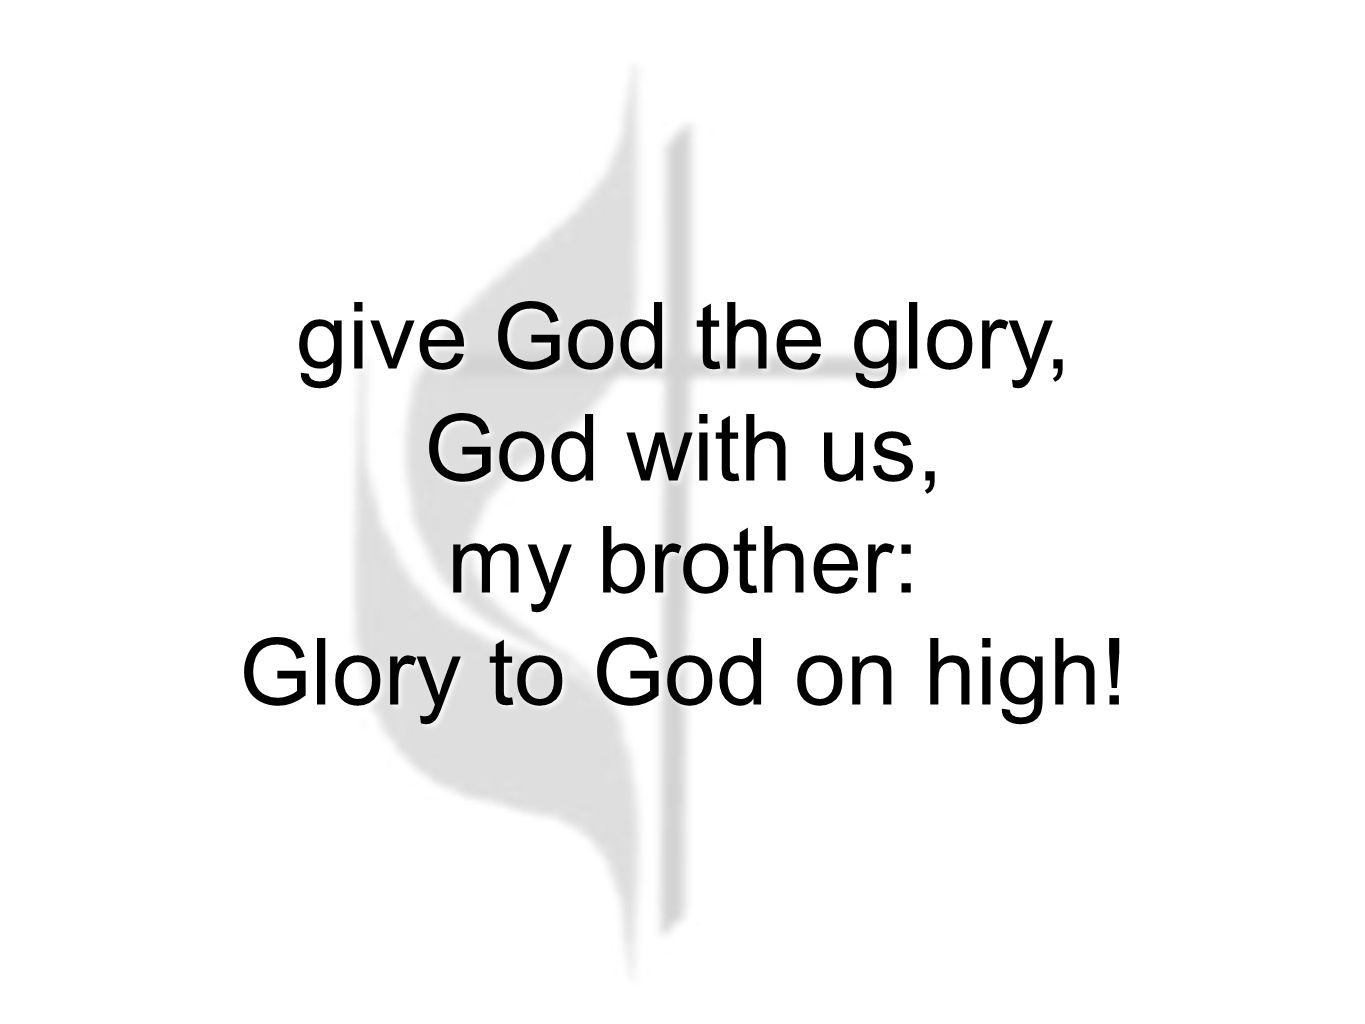 give God the glory, God with us, my brother: Glory to God on high!